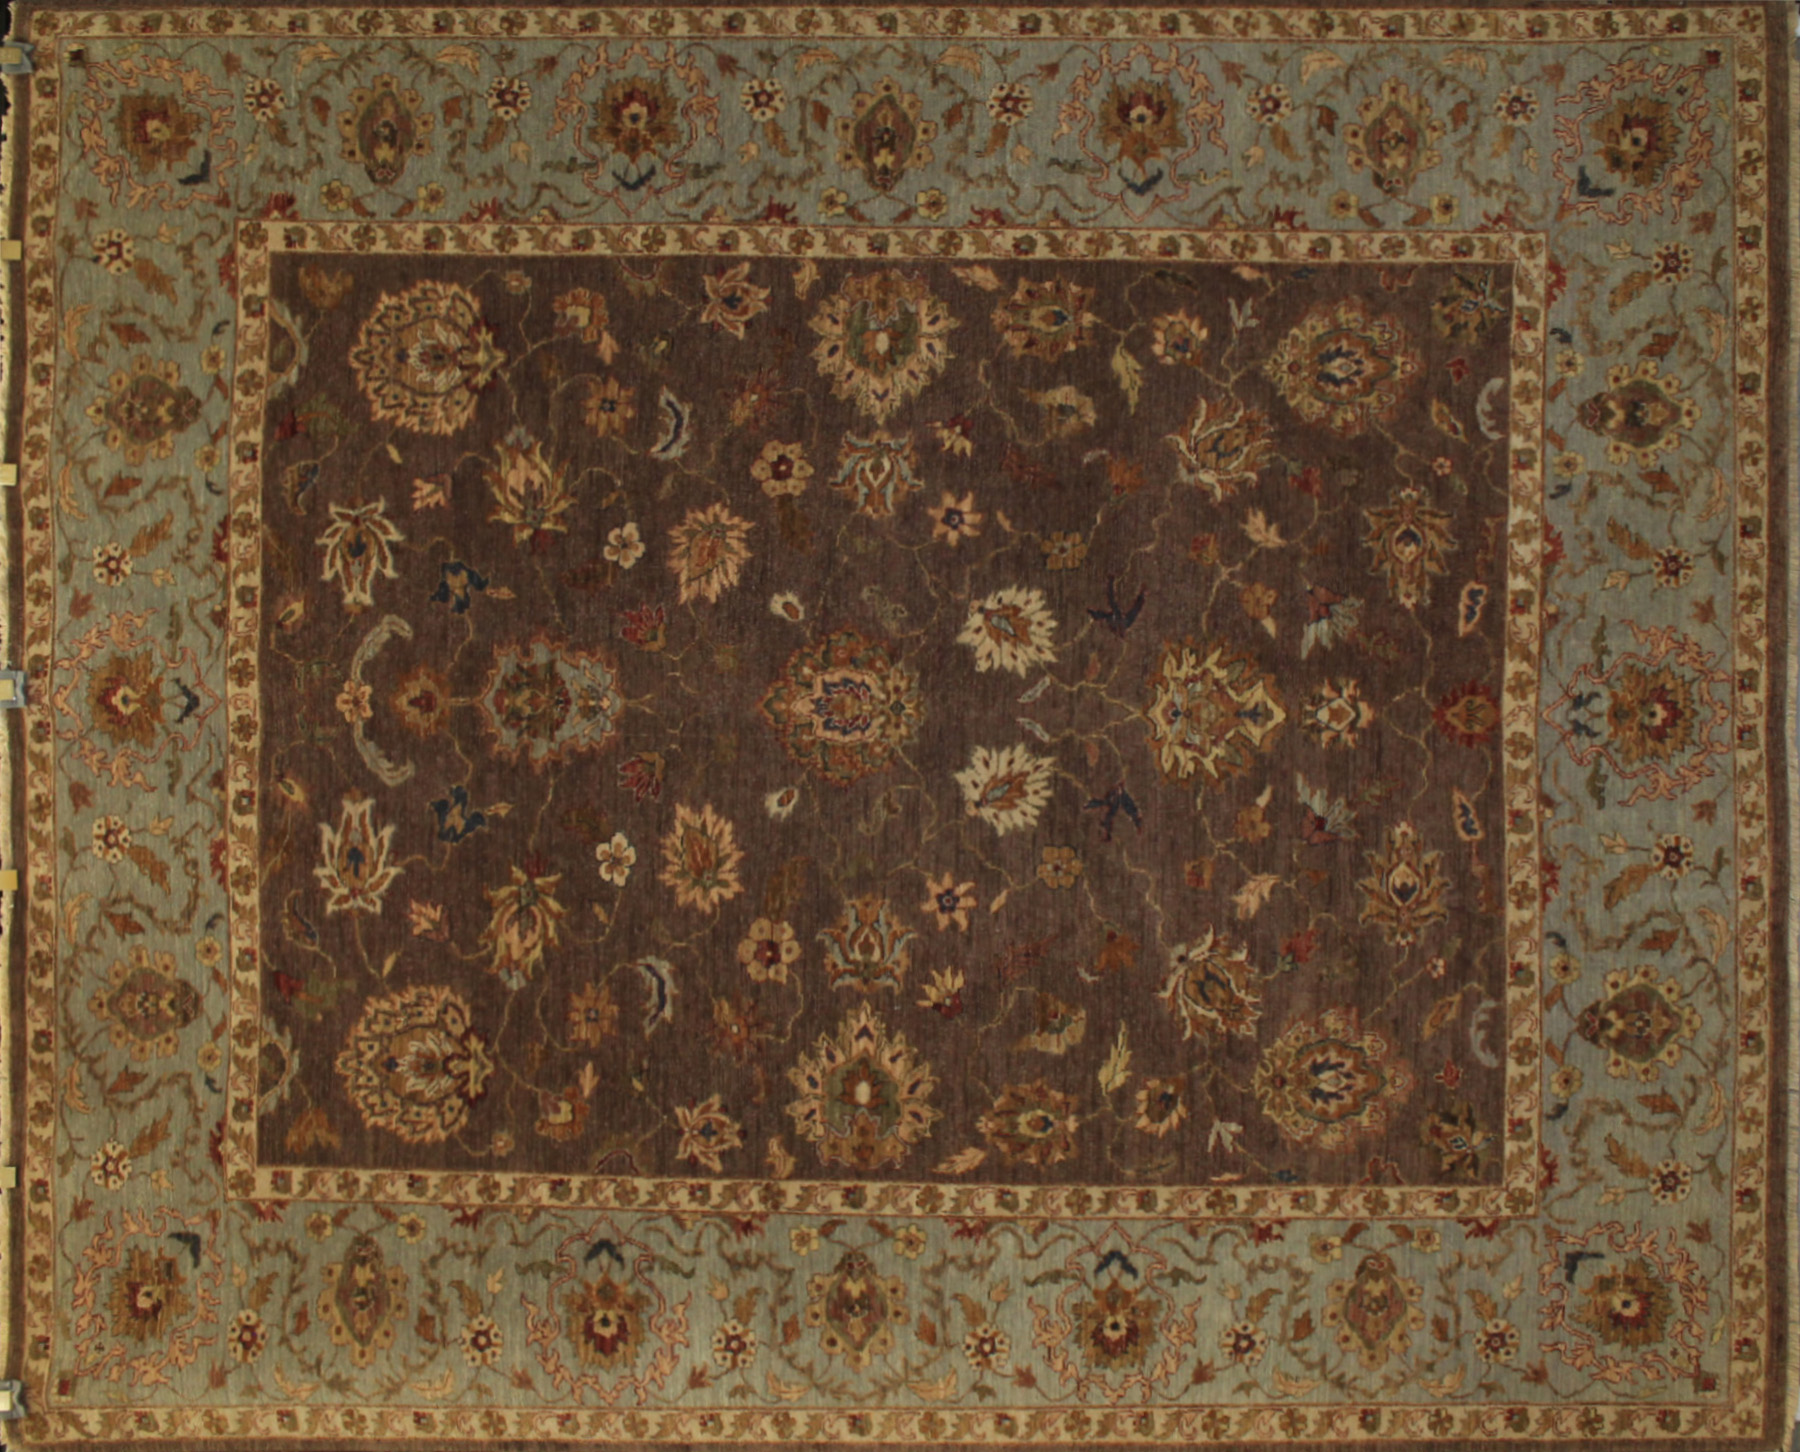 8x10 Traditional Hand Knotted Wool Area Rug - MR13132